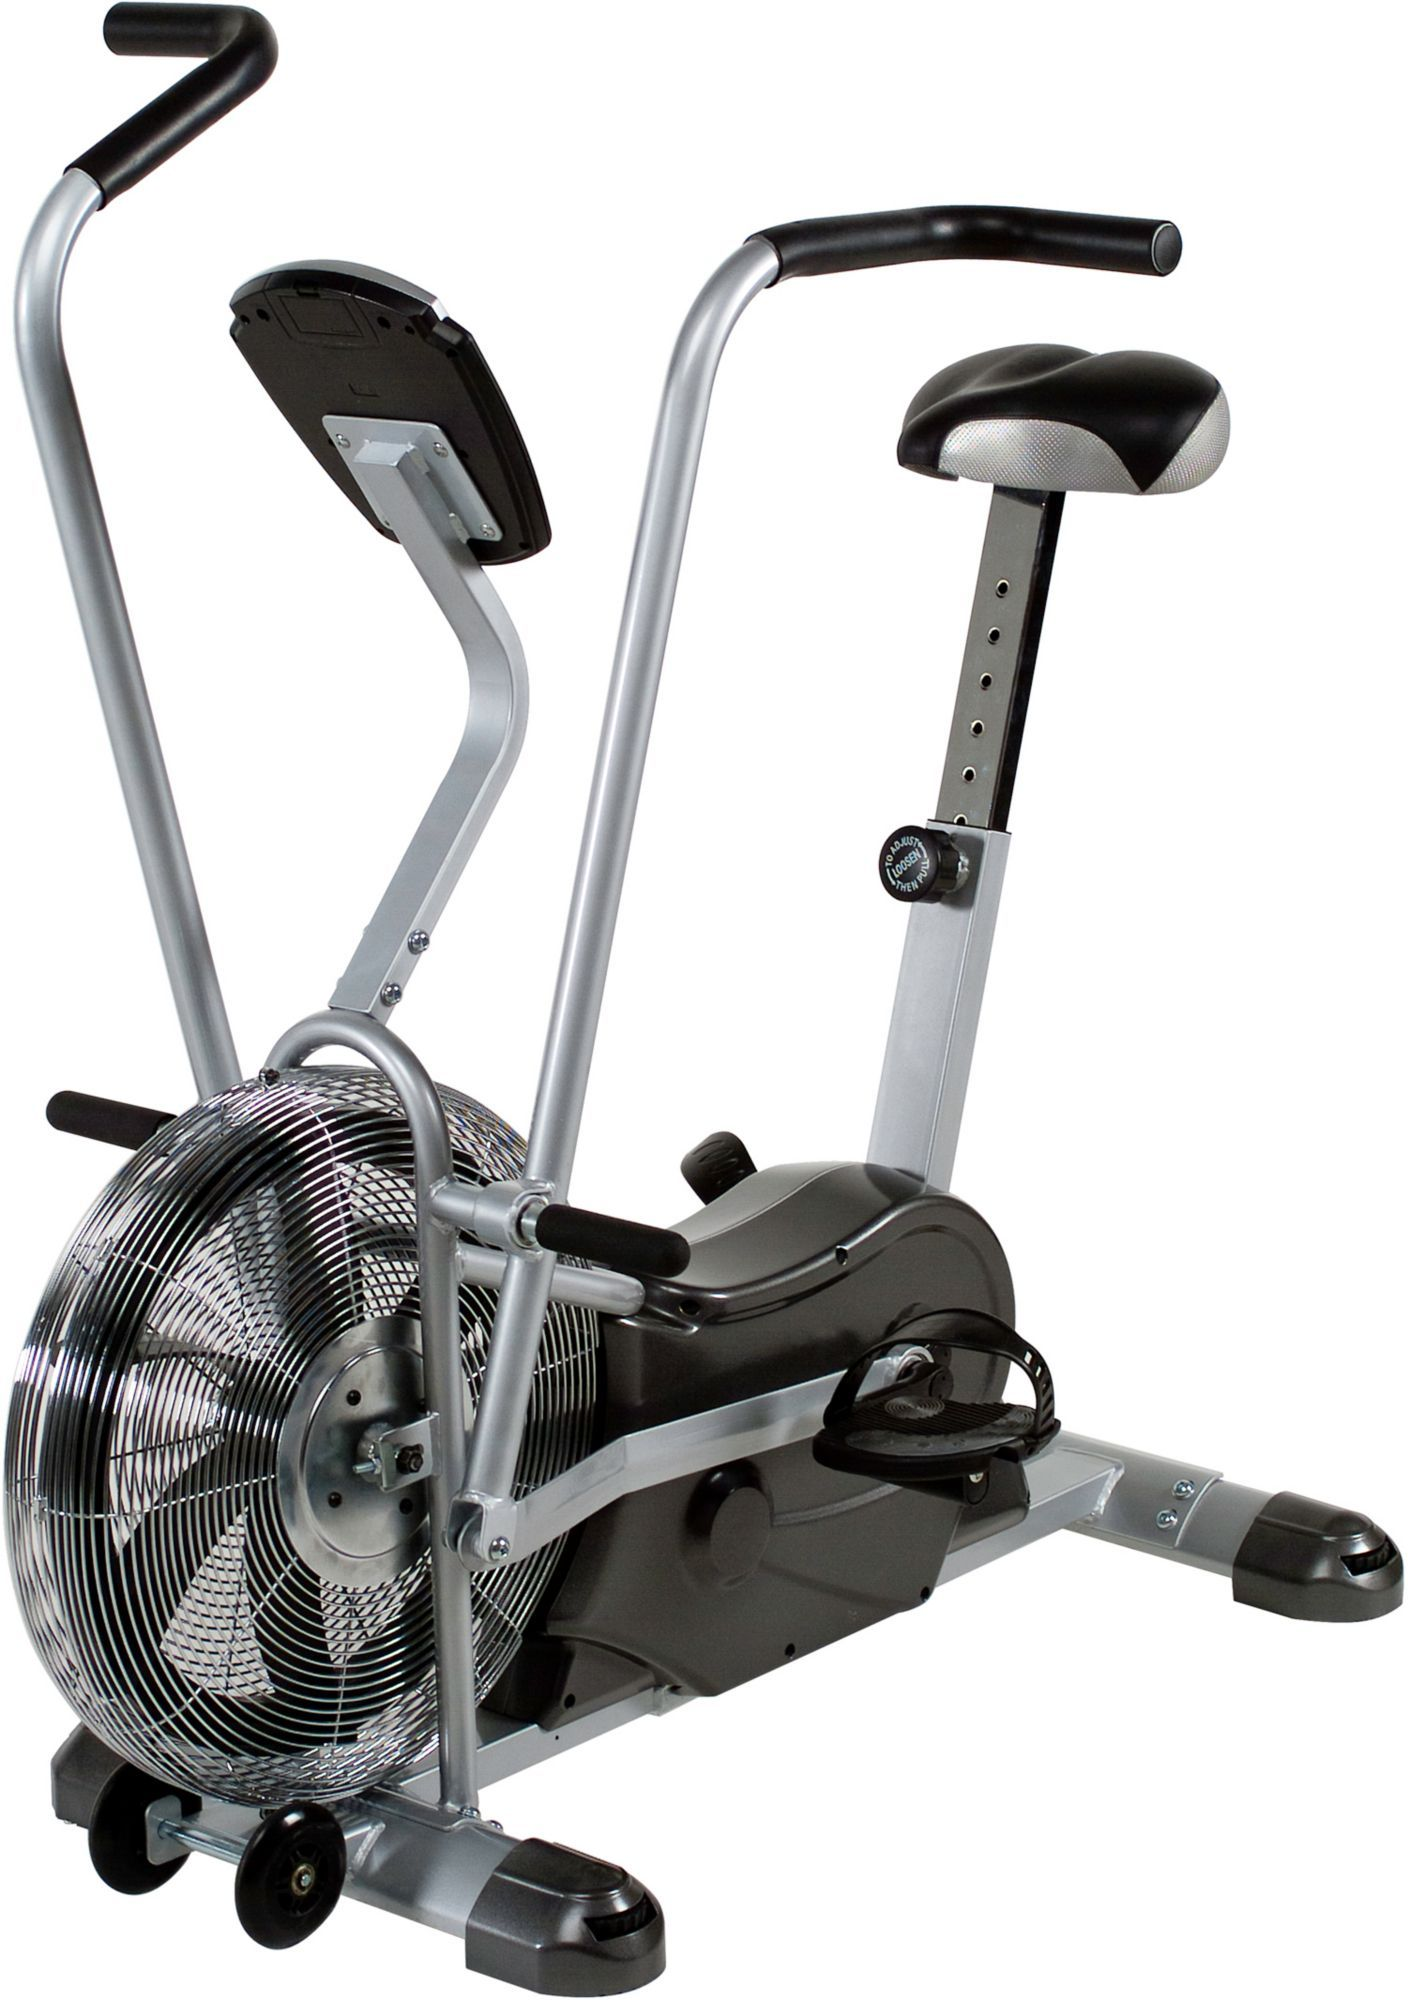 Marcy Deluxe Air Fan Exercise Bike, Silver Bike, Marcy